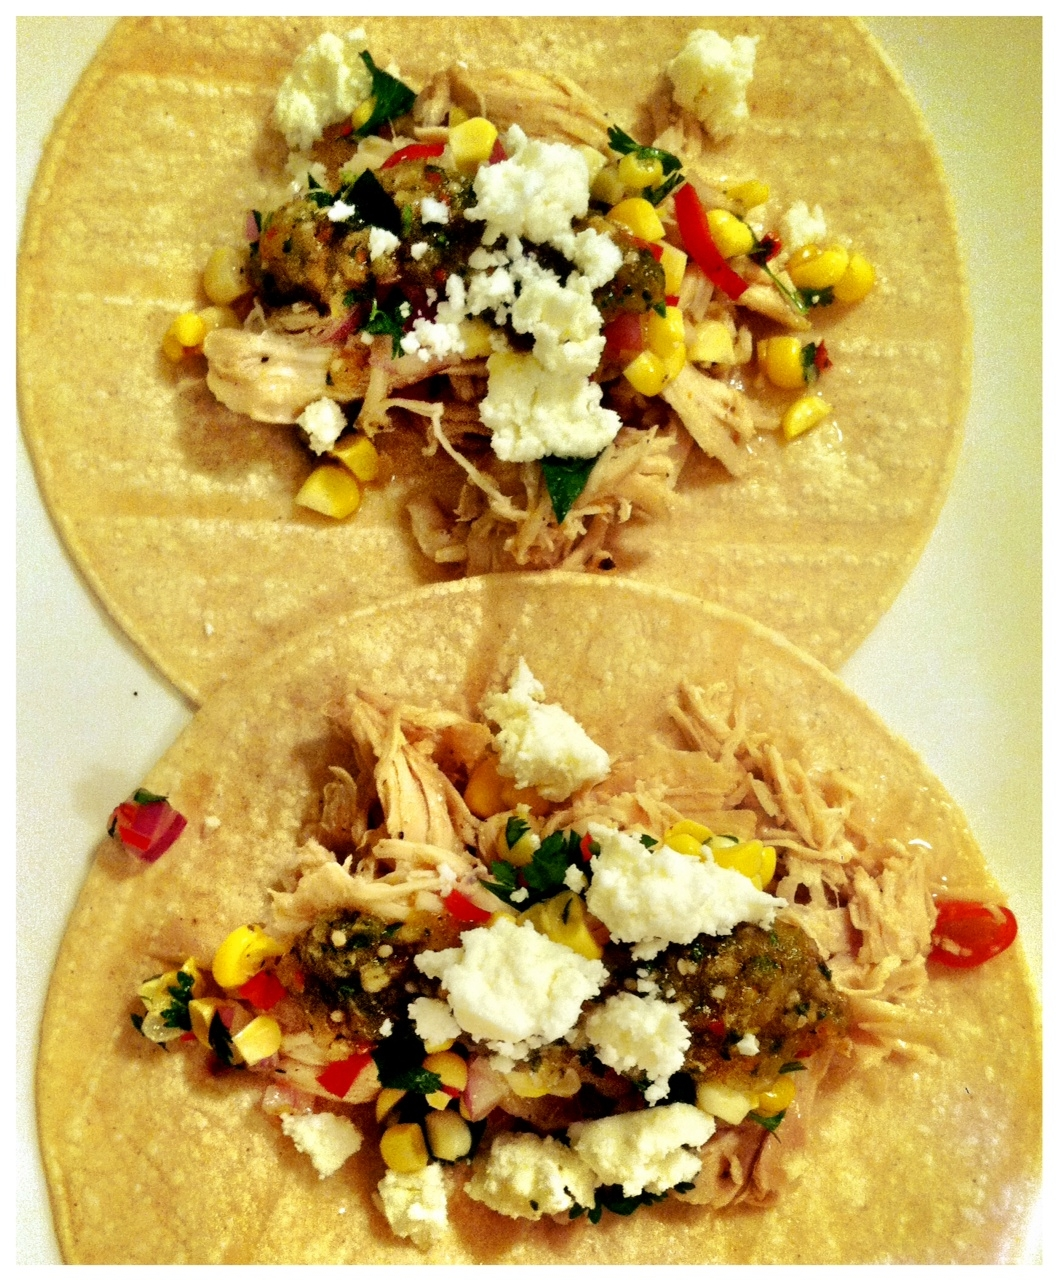 Tequila and Cherry Tomato Shredded Chicken Tacos with Fresh Corn Salsa